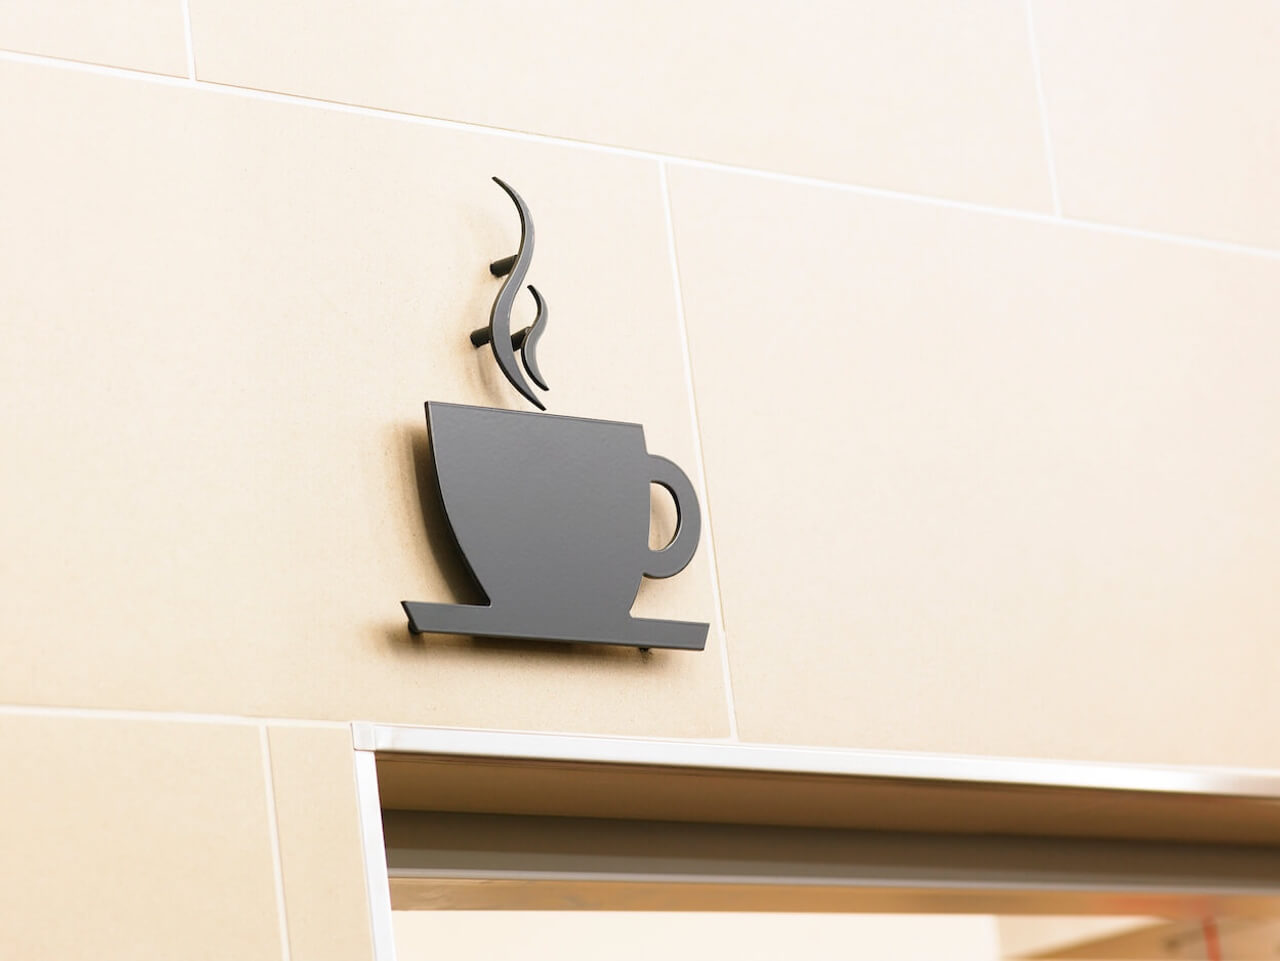 A coffee cup with steam plaque above a doorway depicting the entrance to the café